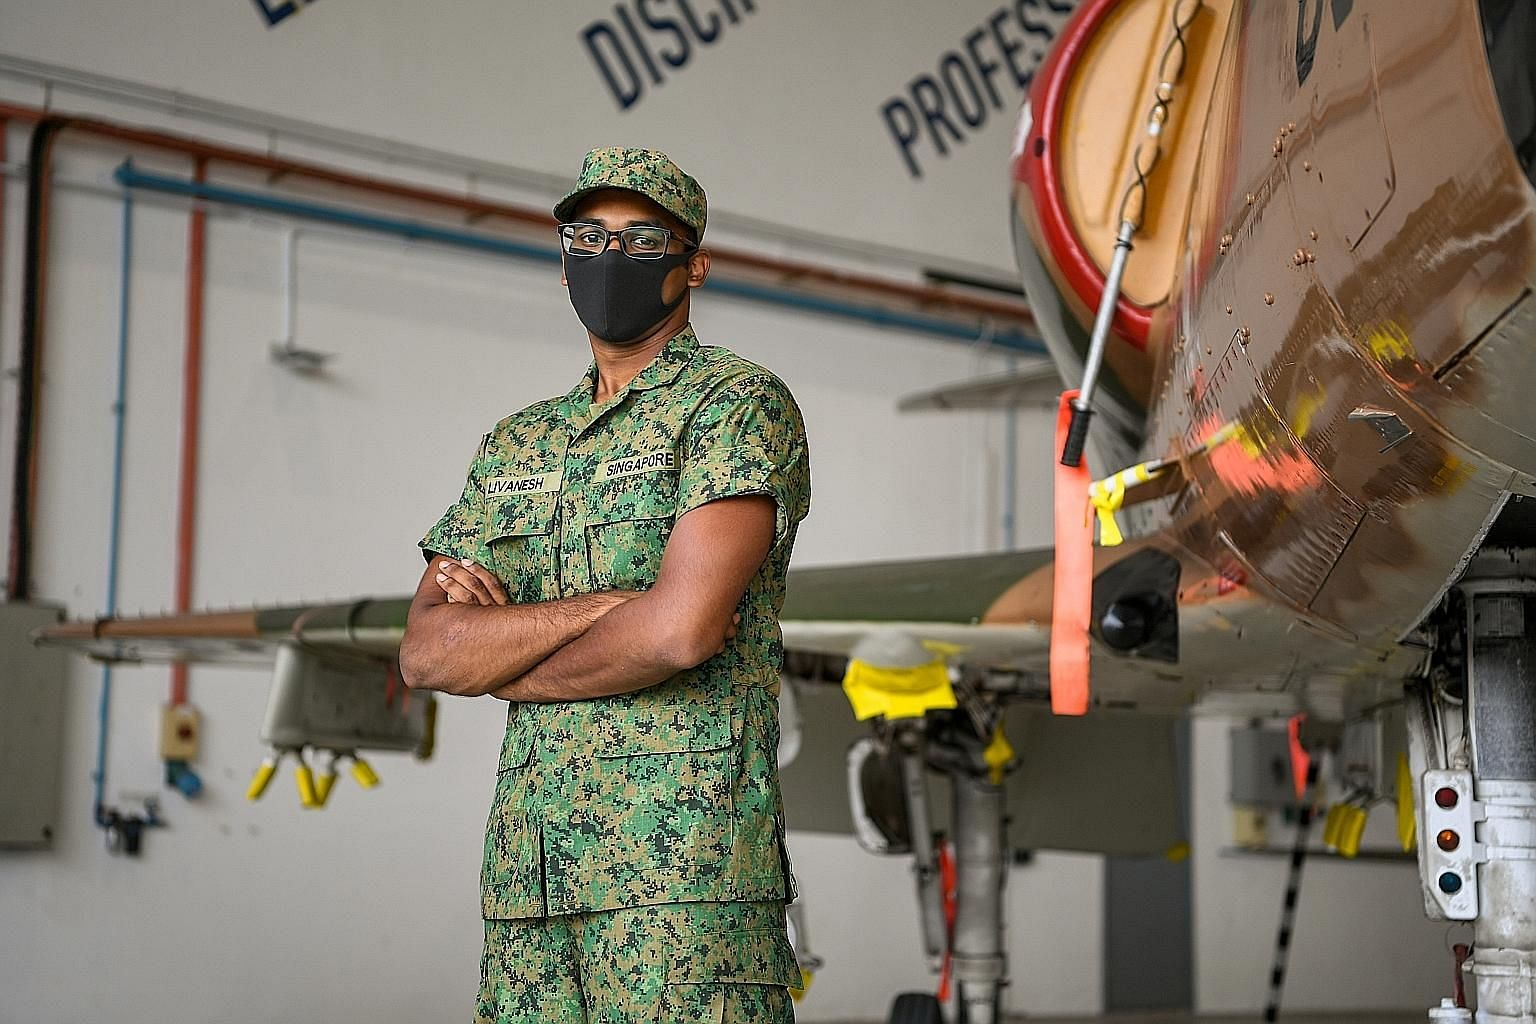 Private Livanesh Ramu will be among about 20 trainees in the pioneer cohort of the new work-study programme, which begins in April next year. The scheme, by the Institute of Technical Education and the Republic of Singapore Air Force, will equip trai